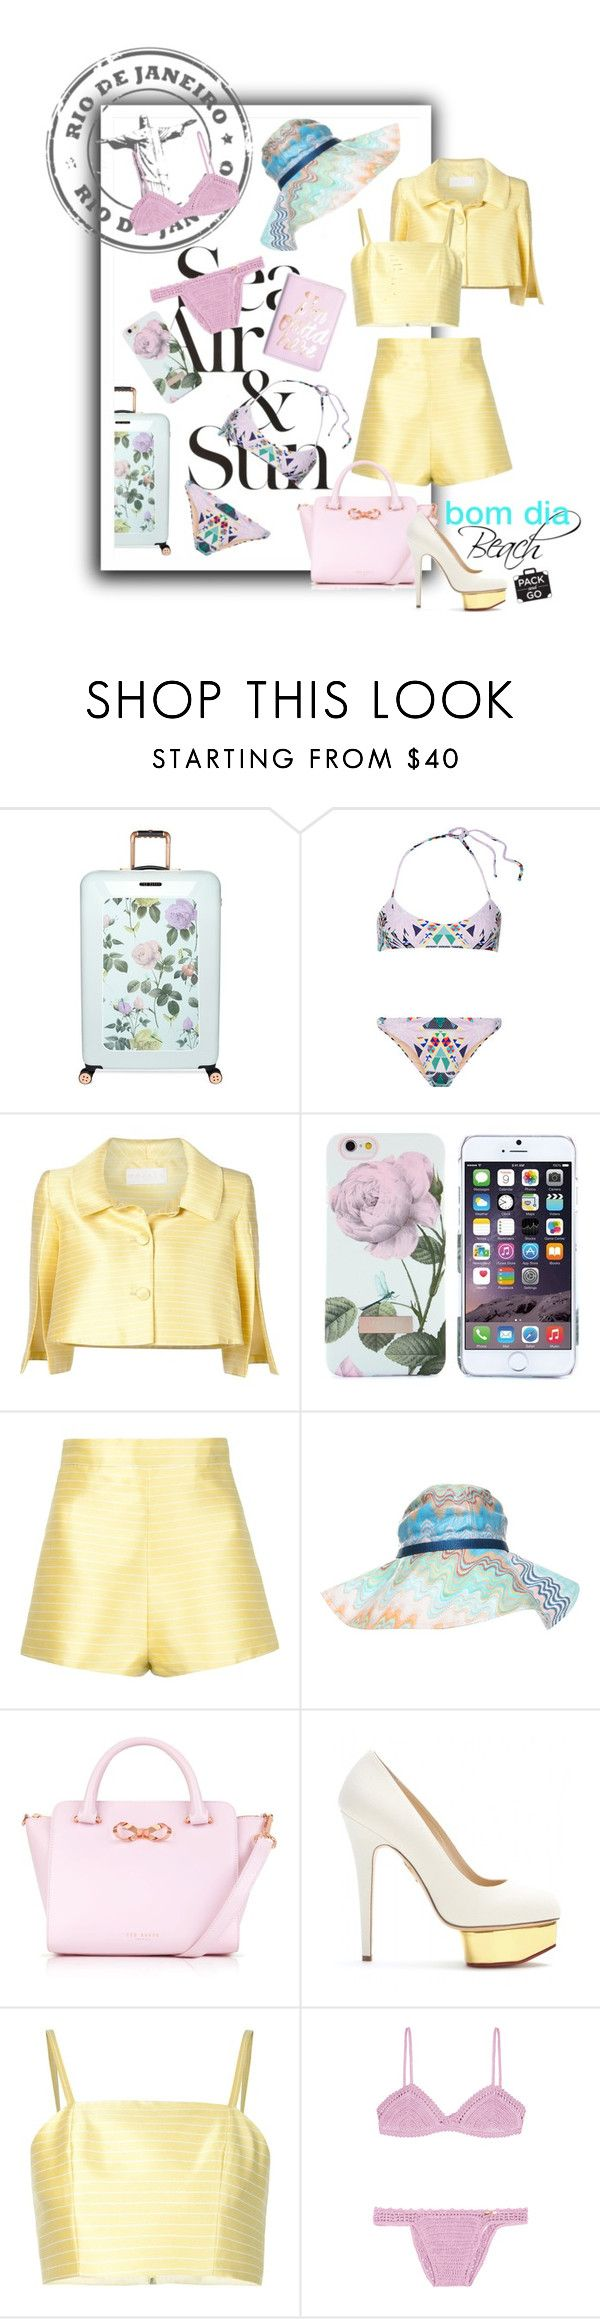 """""""2015aw bom dia rio"""" by vaughnroyal ❤ liked on Polyvore featuring Valentino, Ted Baker, Mara Hoffman, Christian V Siriano, ban.do, Missoni, Charlotte Olympia and SHE MADE ME"""